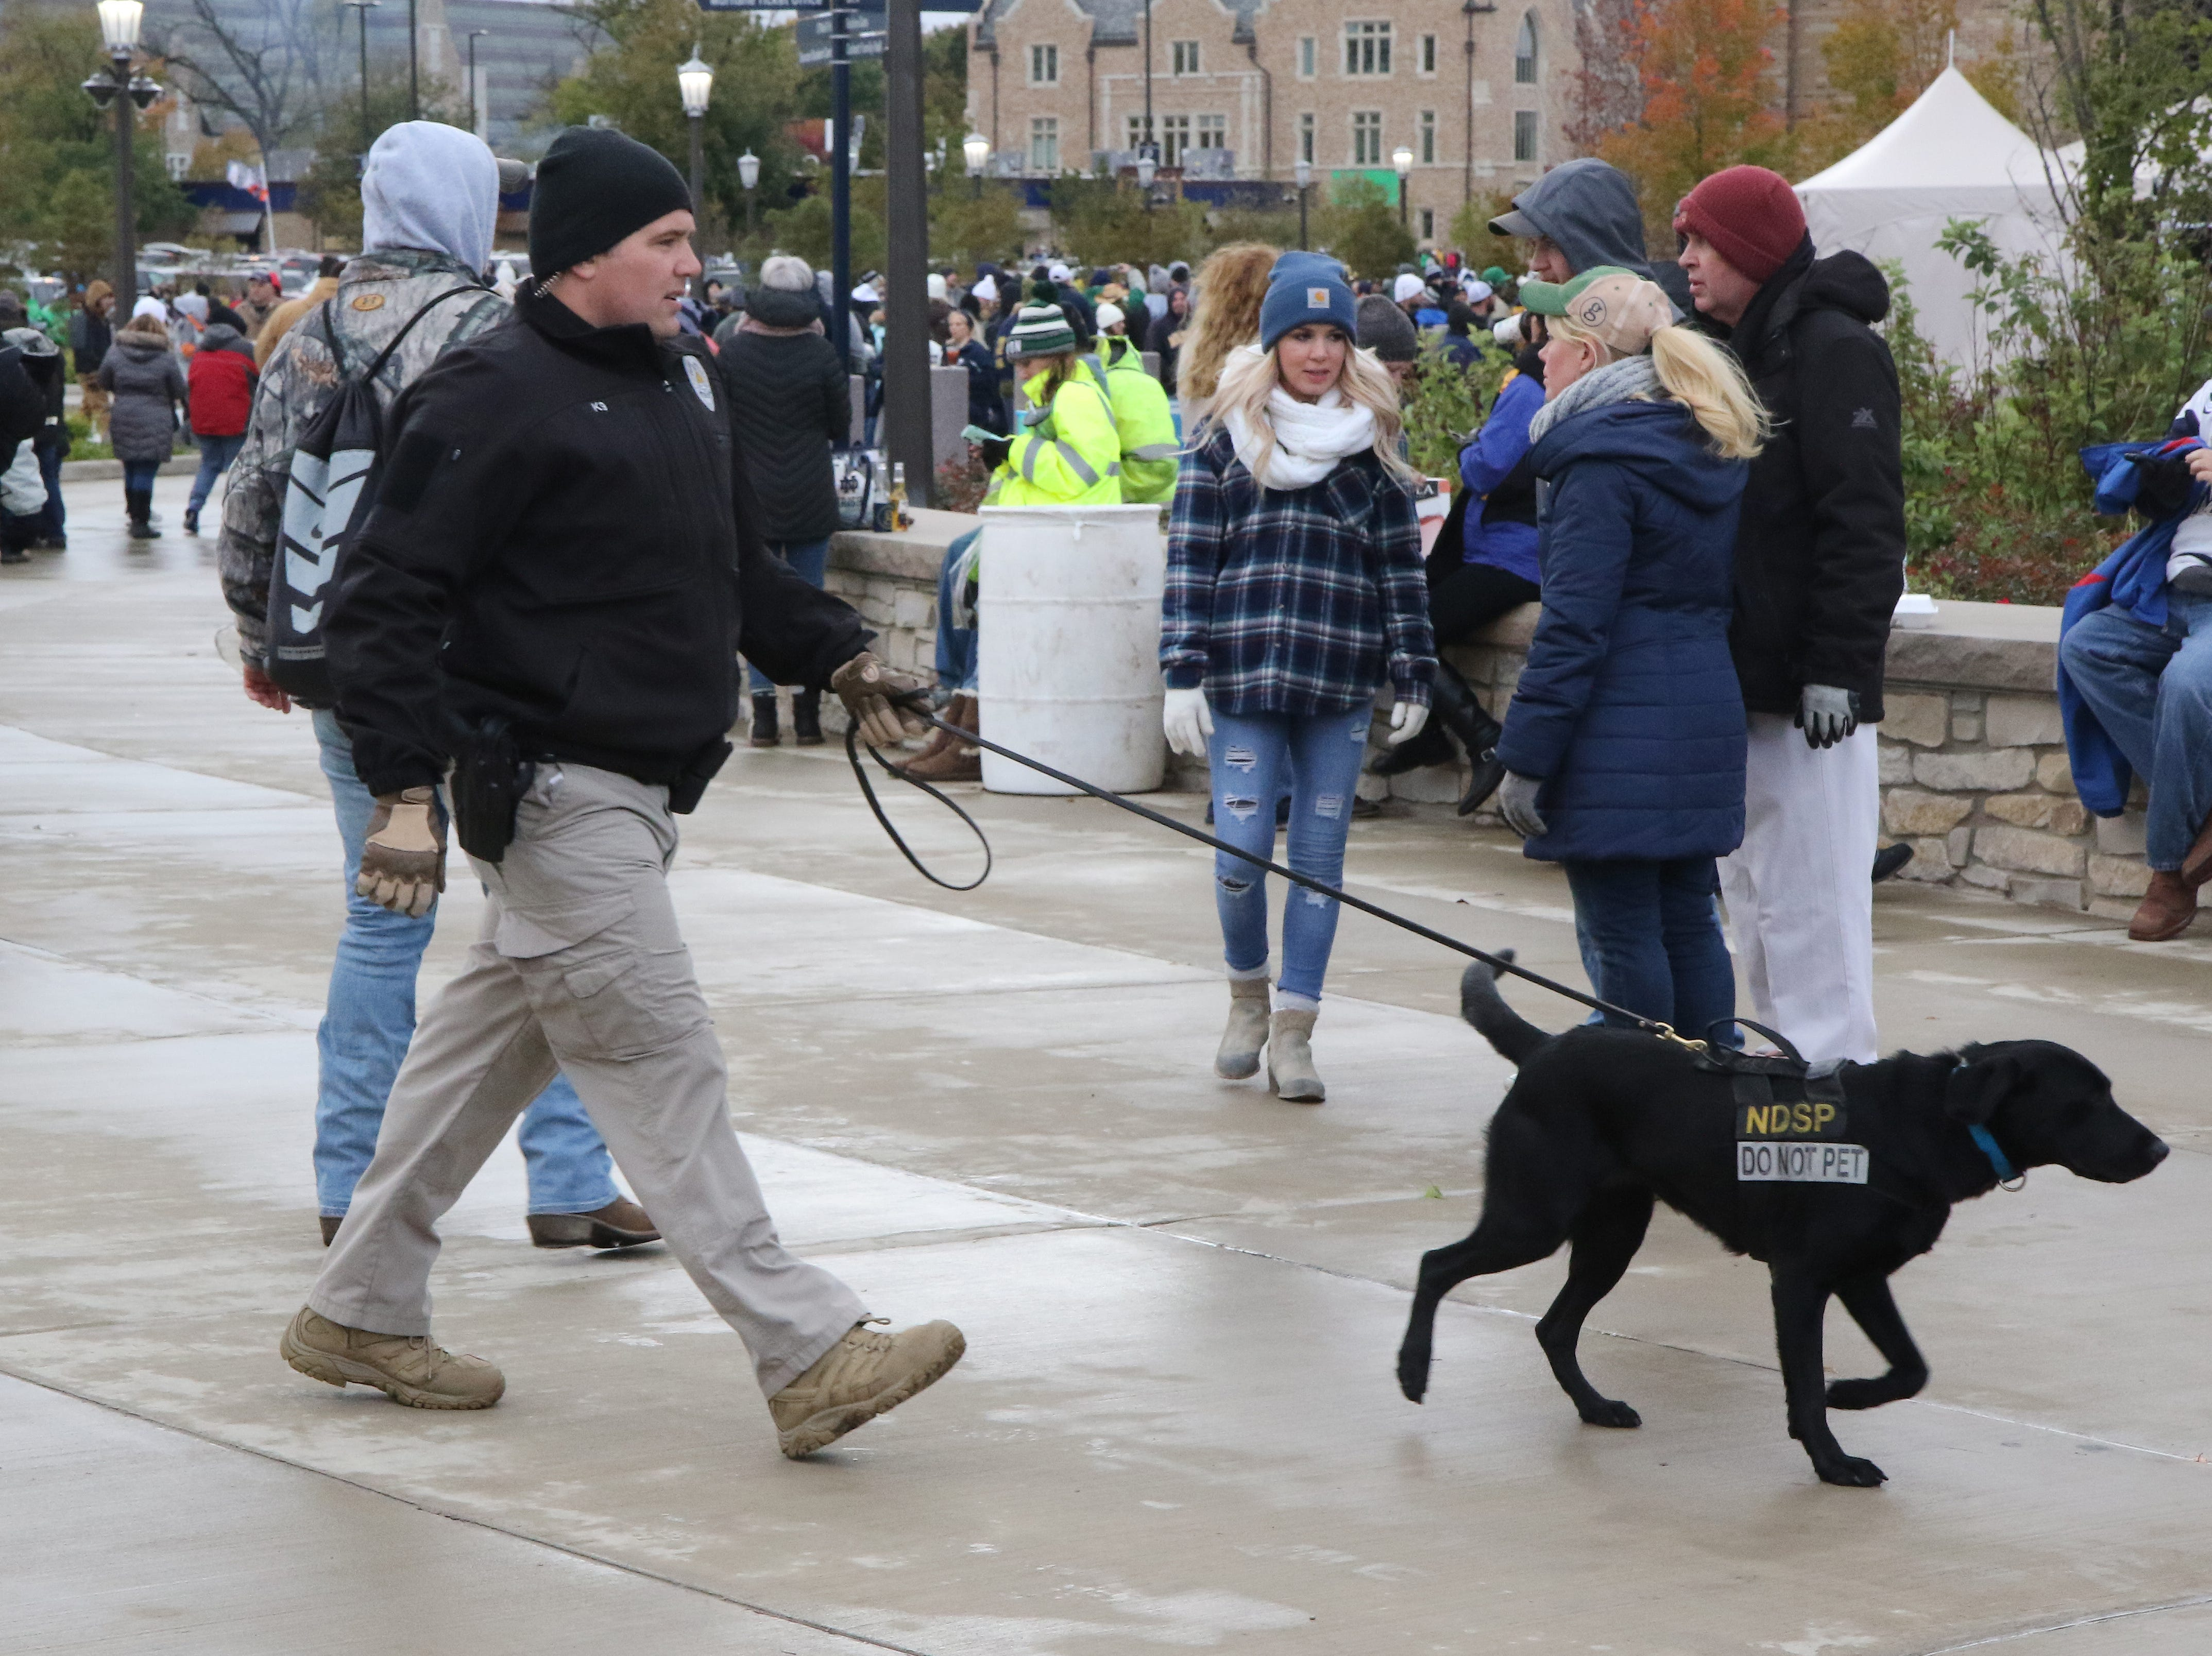 Security was tight at Notre Dame stadium for historic first-ever concert at Notre Dame Stadium in South Bend, Ind., on Saturday, Oct. 20, 2018.